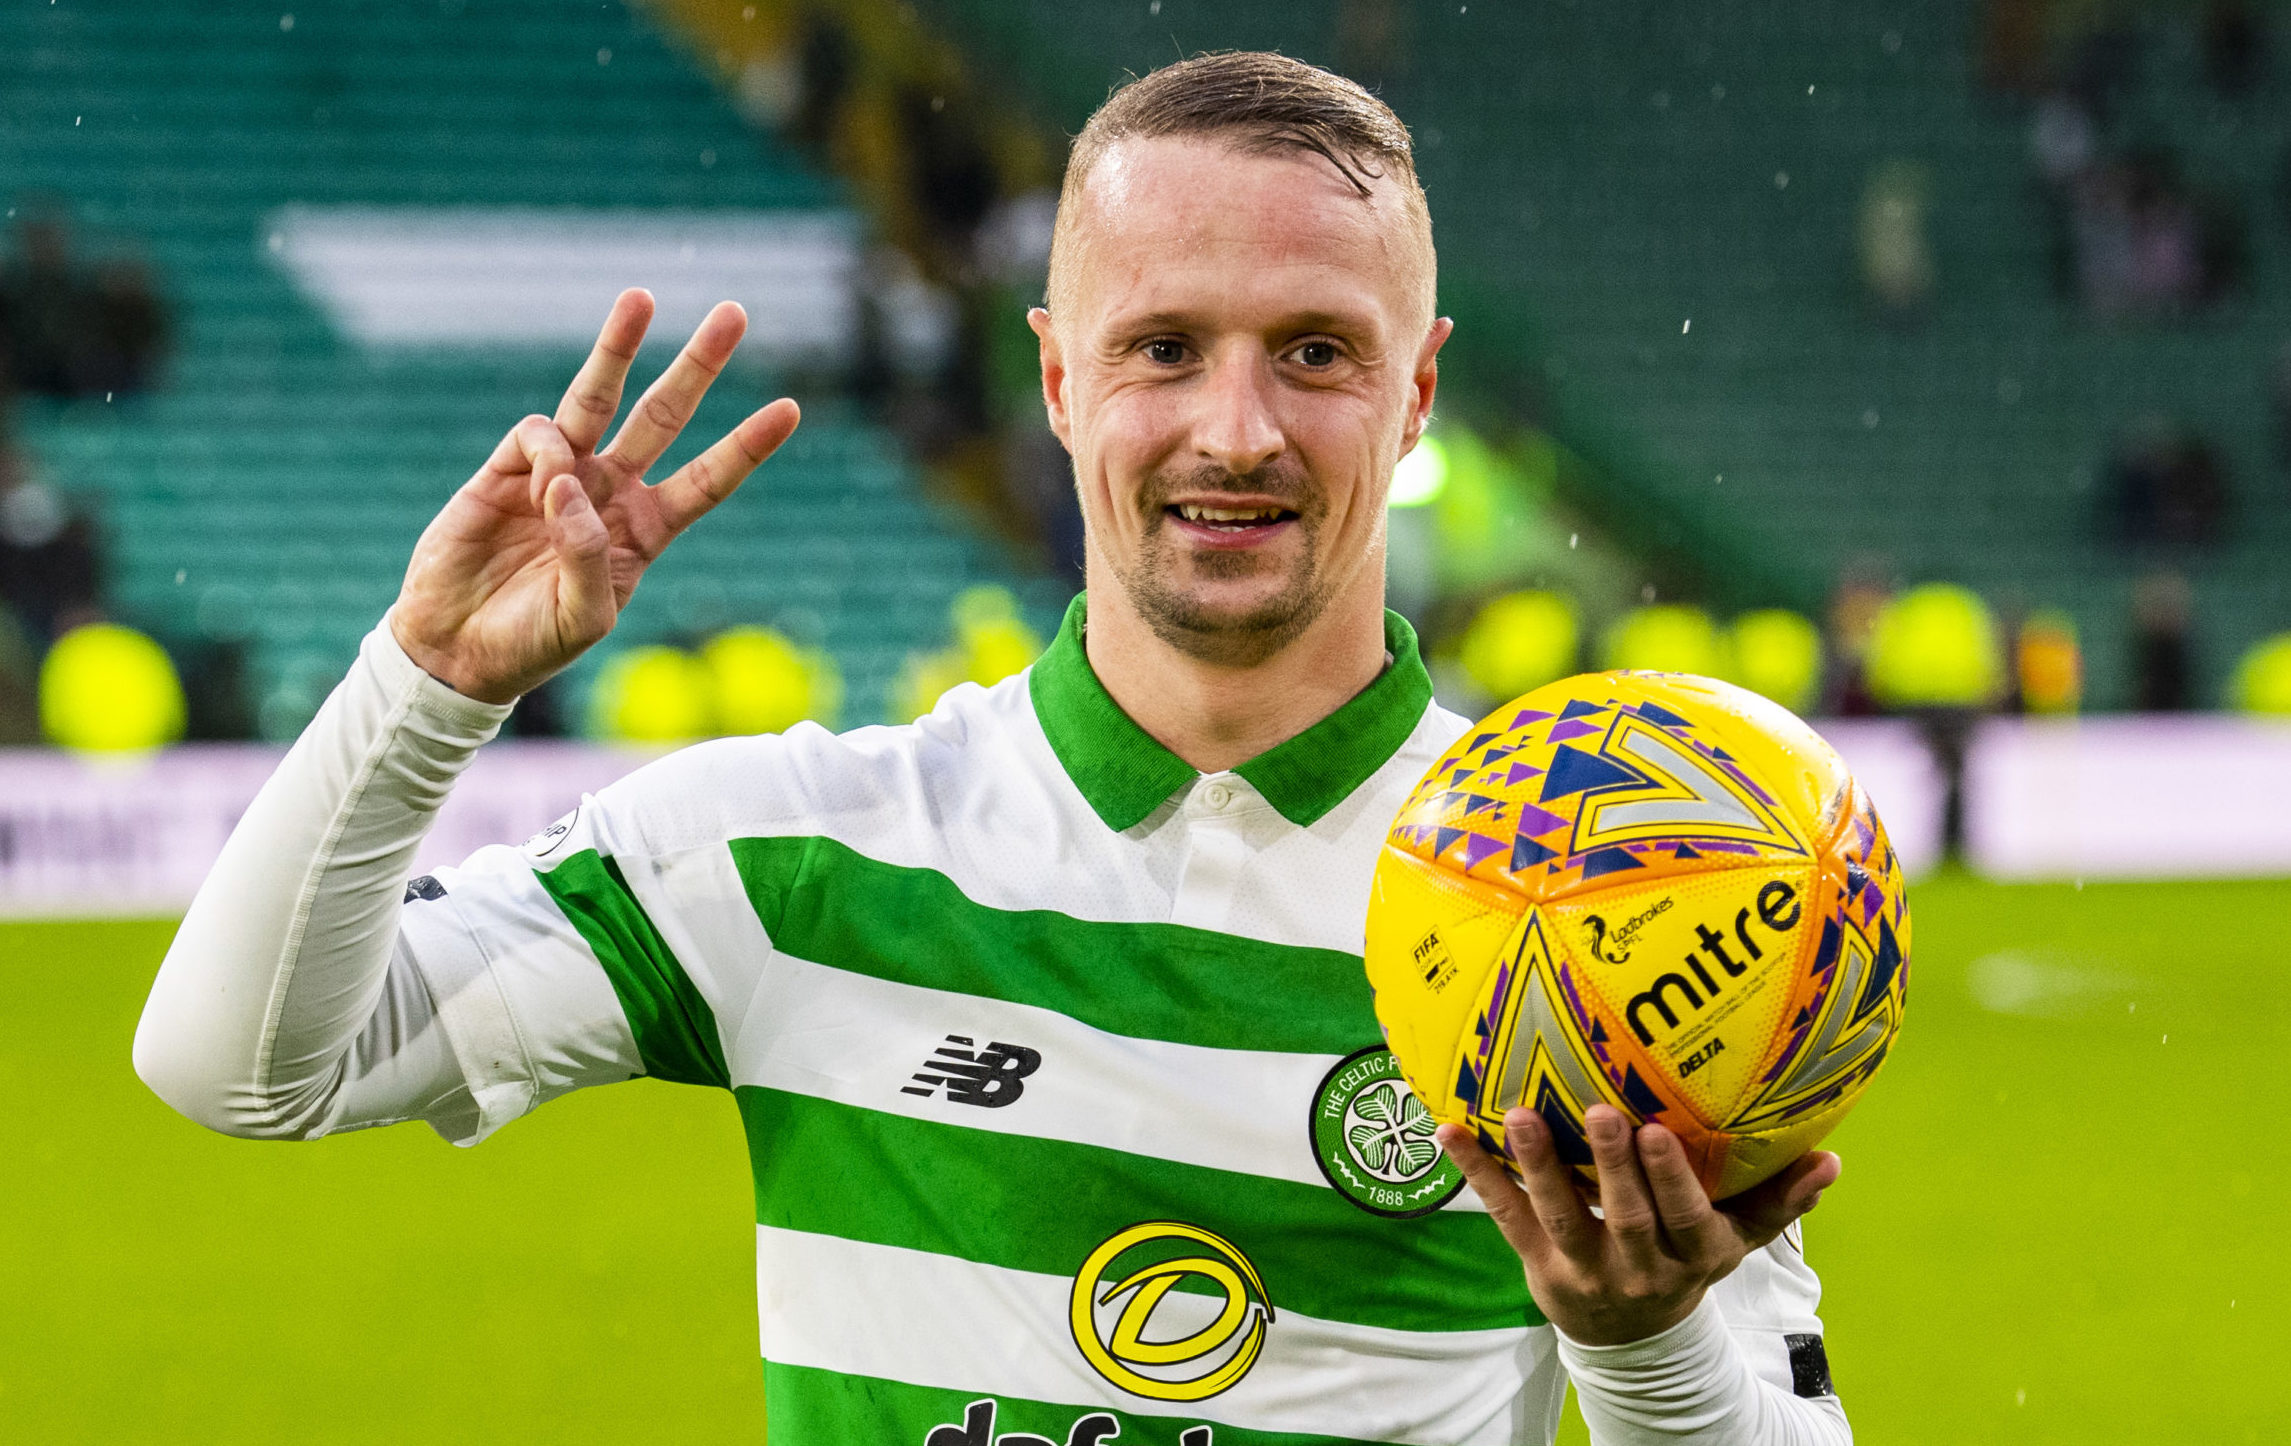 Celtic's Leigh Griffiths celebrates his hat trick against St Mirren